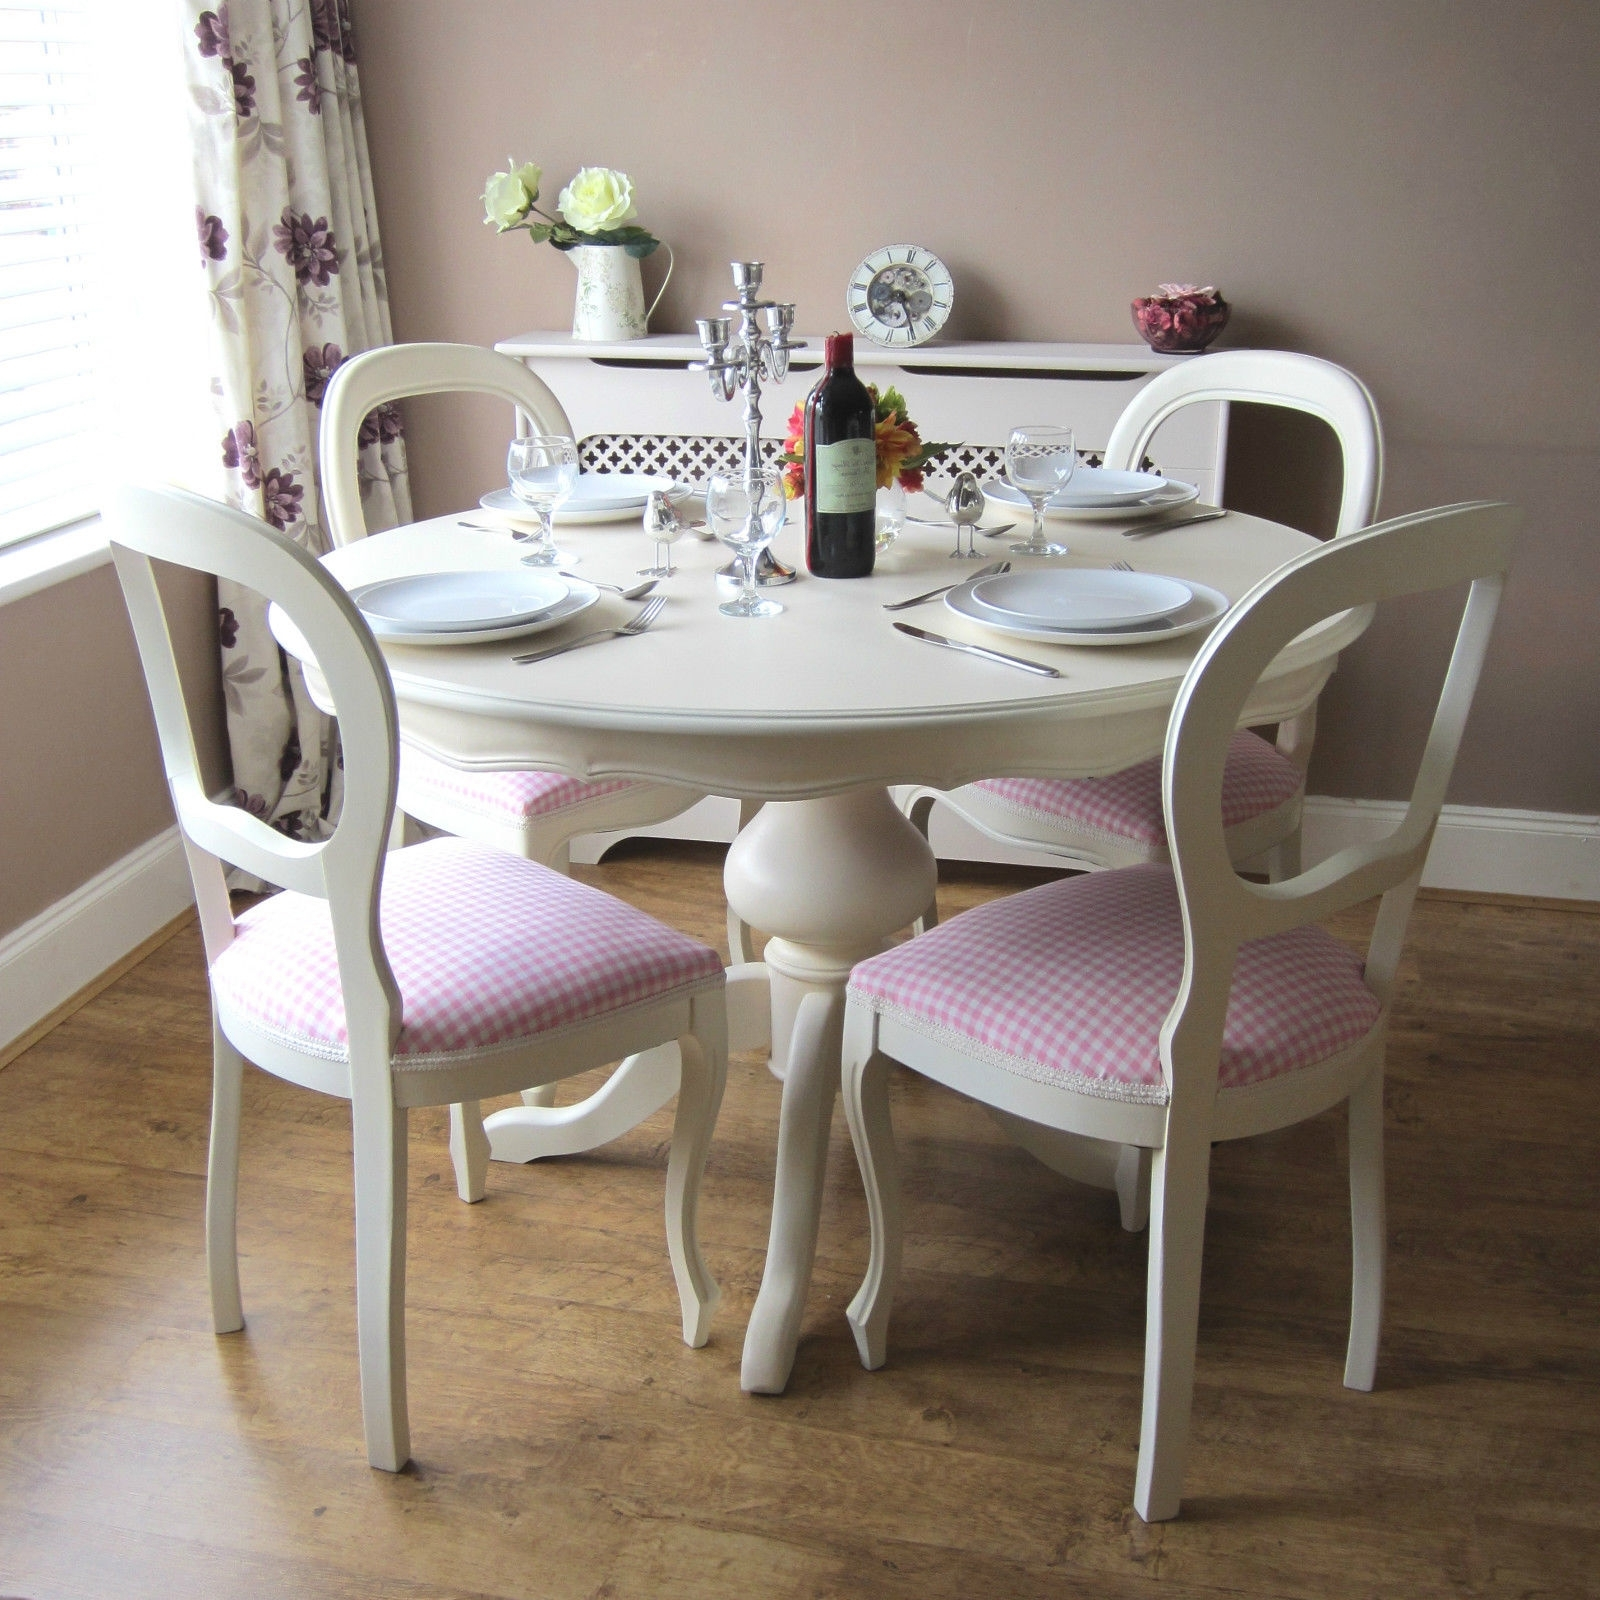 Famous Table Cool Extending And Glass For Dining Set Oak Round Chair Large For White Round Extending Dining Tables (View 21 of 25)